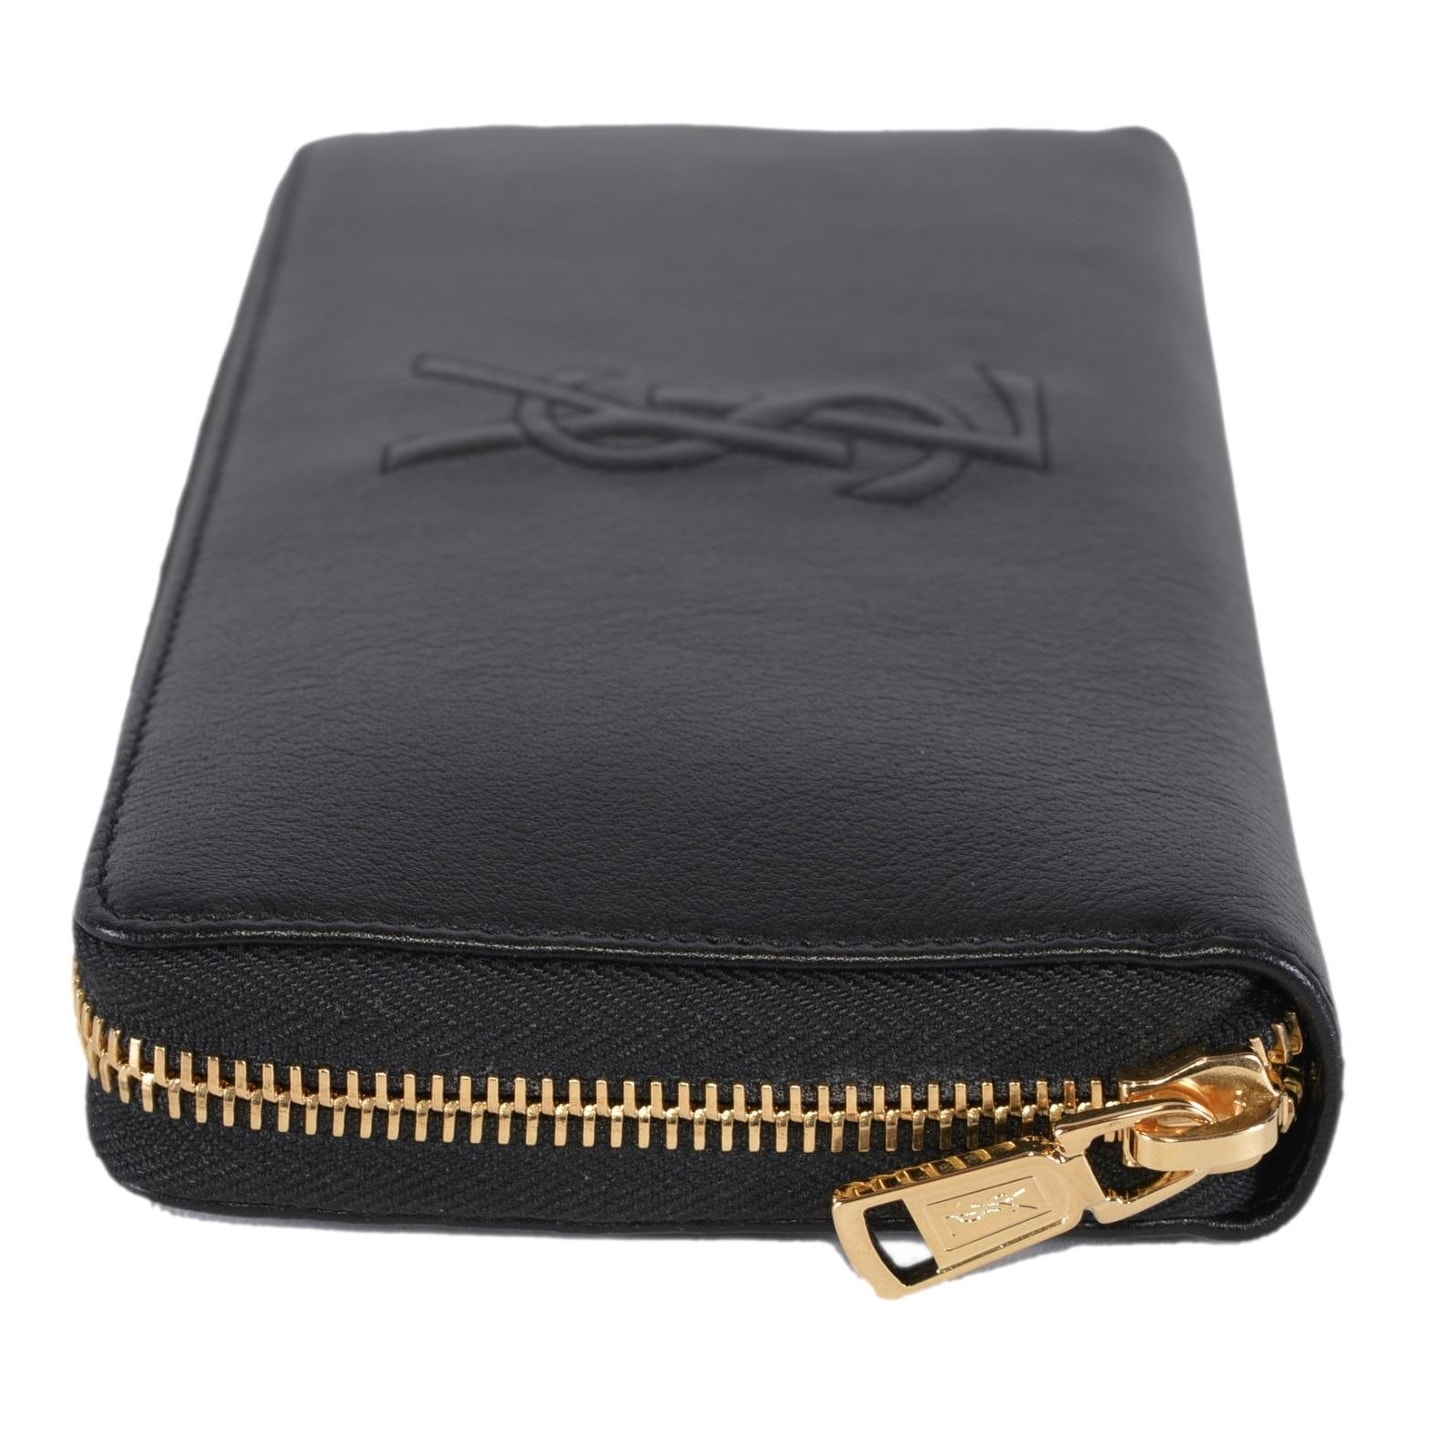 6265893f98e1 Shop Saint Laurent YSL 352904 Black Leather Belle de Jour Zip Around Wallet  - 7.5